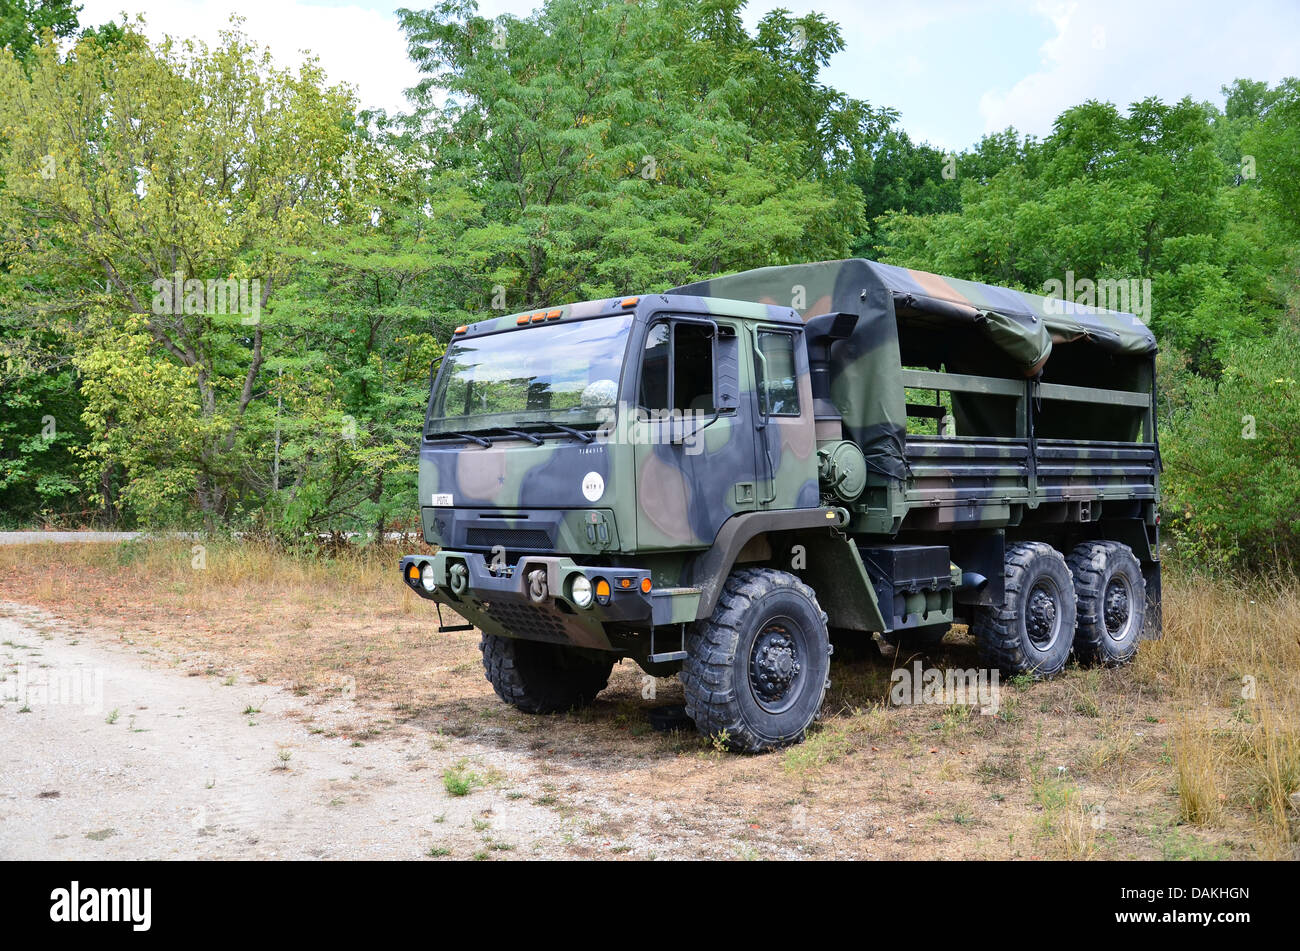 military personnel carrier 2 1 2 ton truck in camouflage stock photo 58208549 alamy. Black Bedroom Furniture Sets. Home Design Ideas